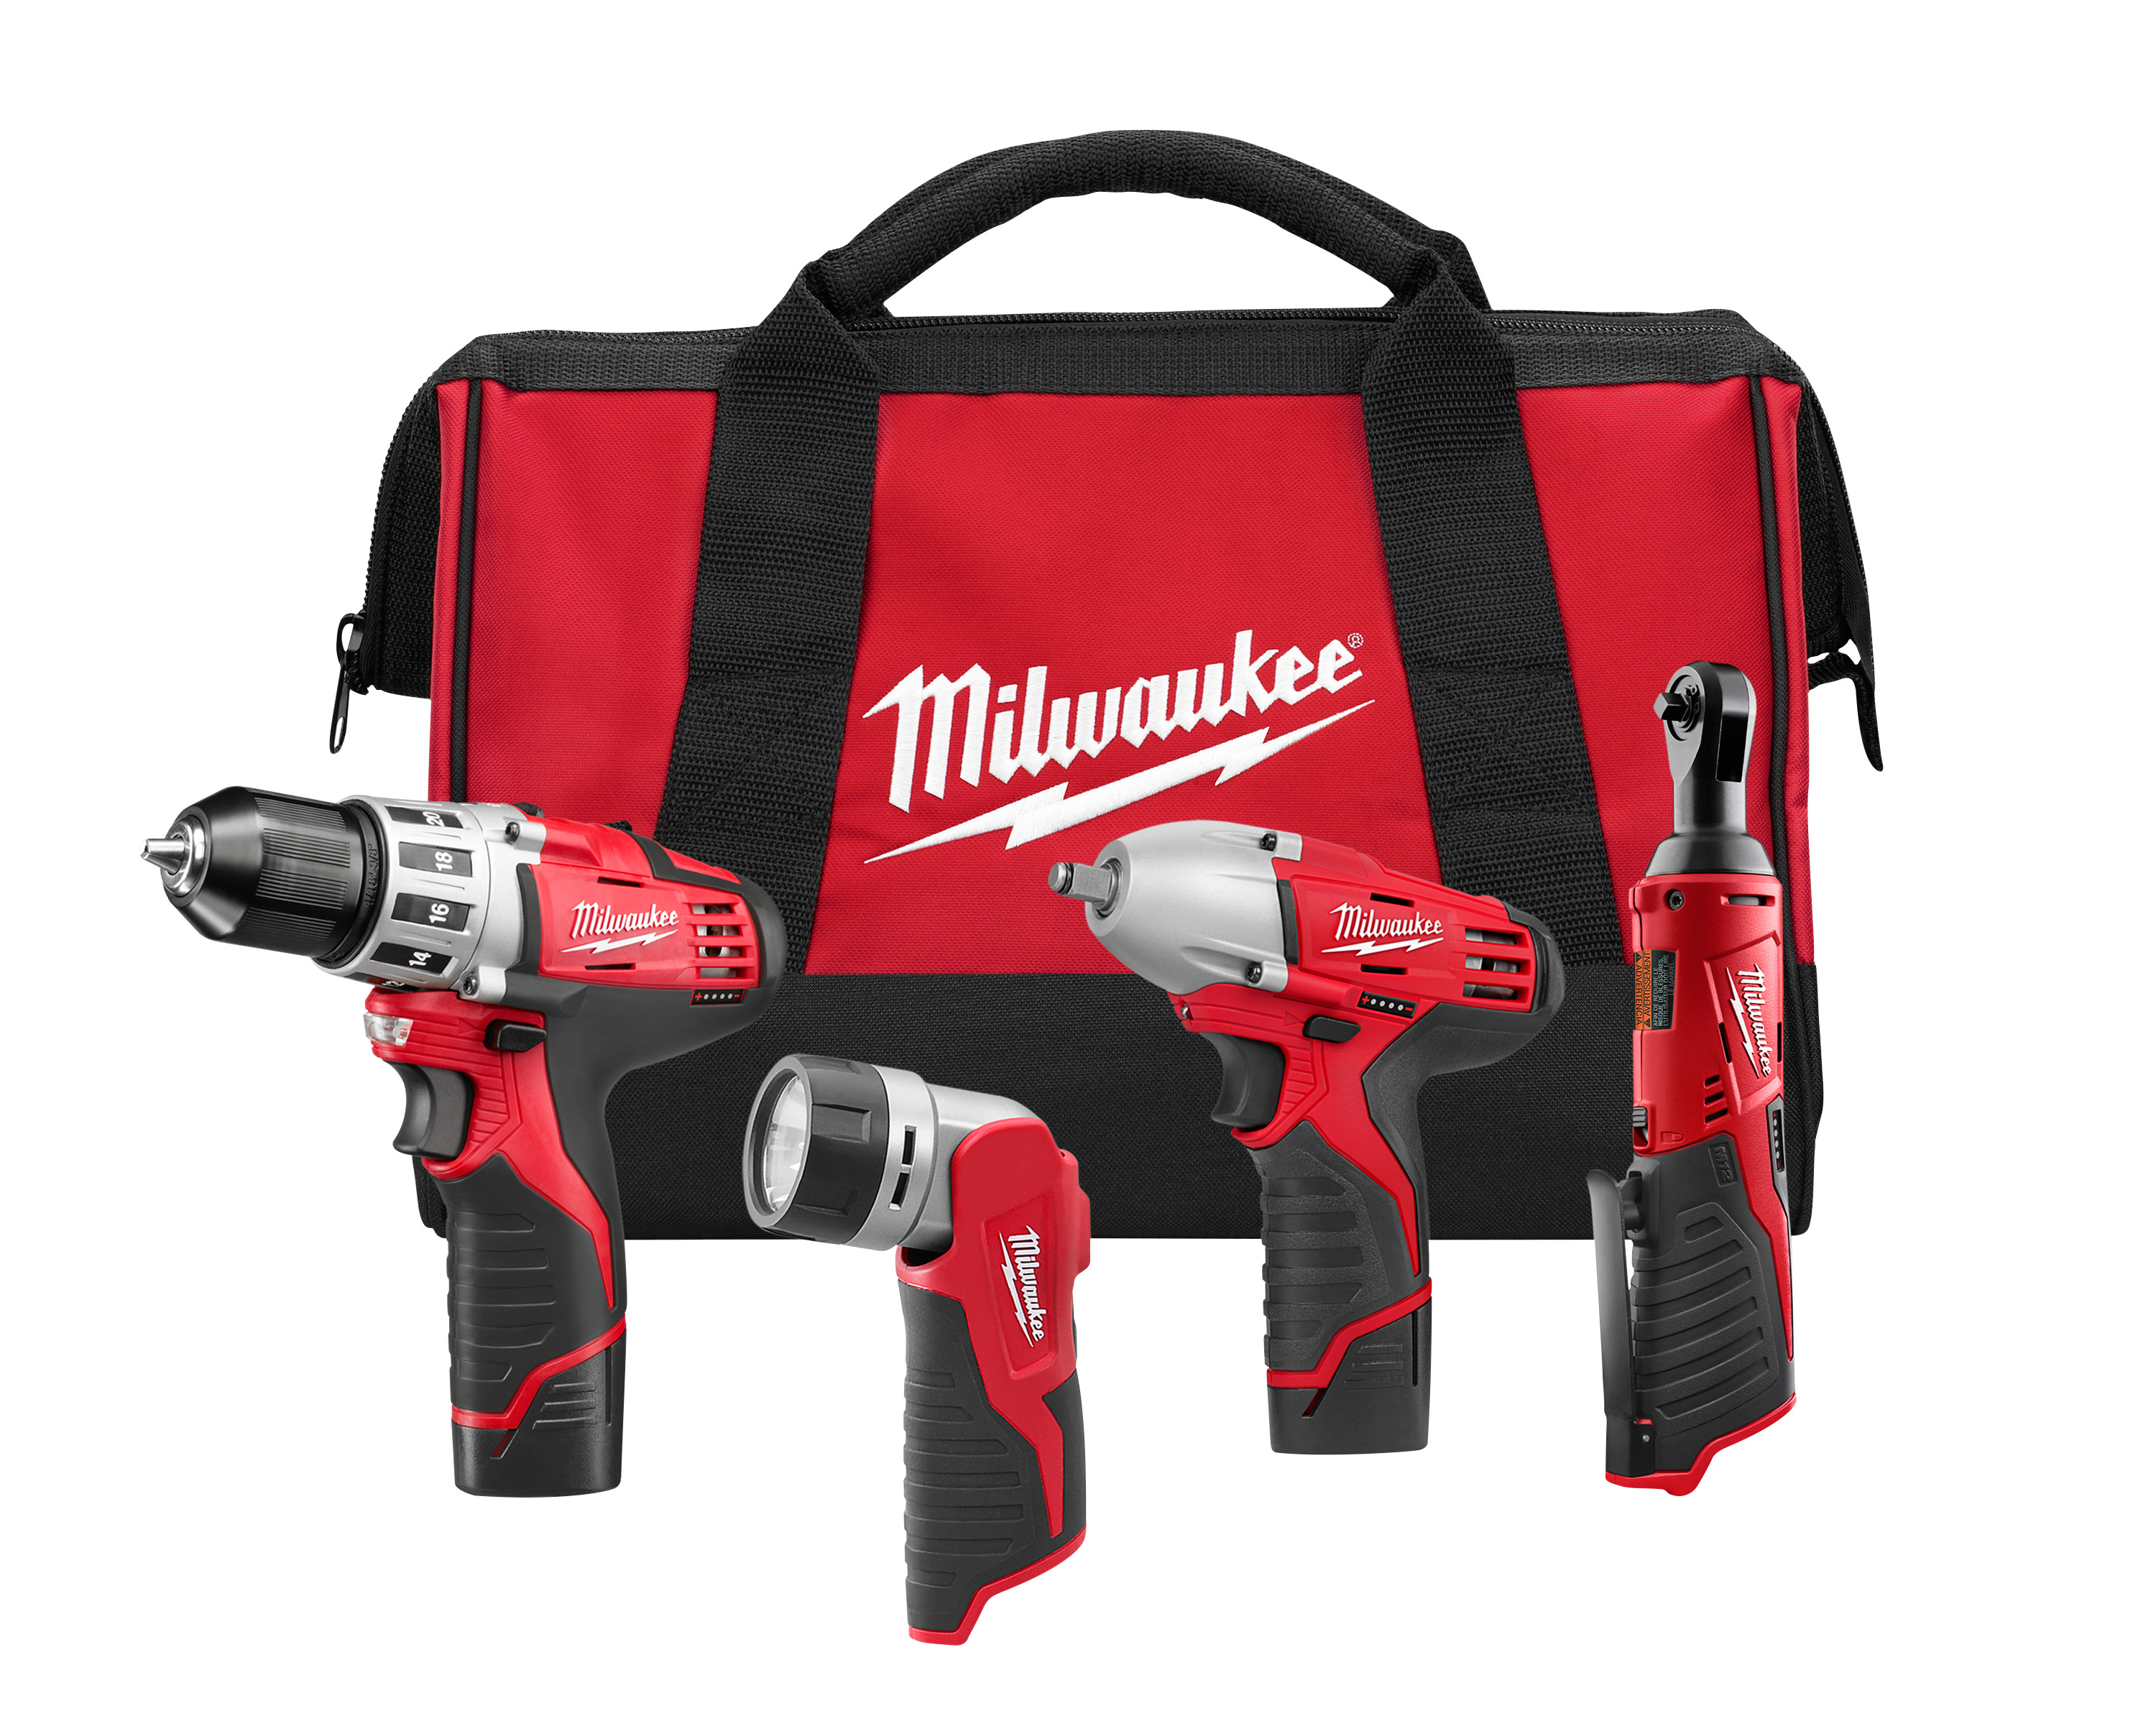 Milwaukee® M12™ 2493-24 4-Tool Cordless Combination Kit, Tools: Drill Driver, Impact Wrench, Ratchet, 12 VDC, 1.5 Ah Lithium-Ion, Keyless Blade